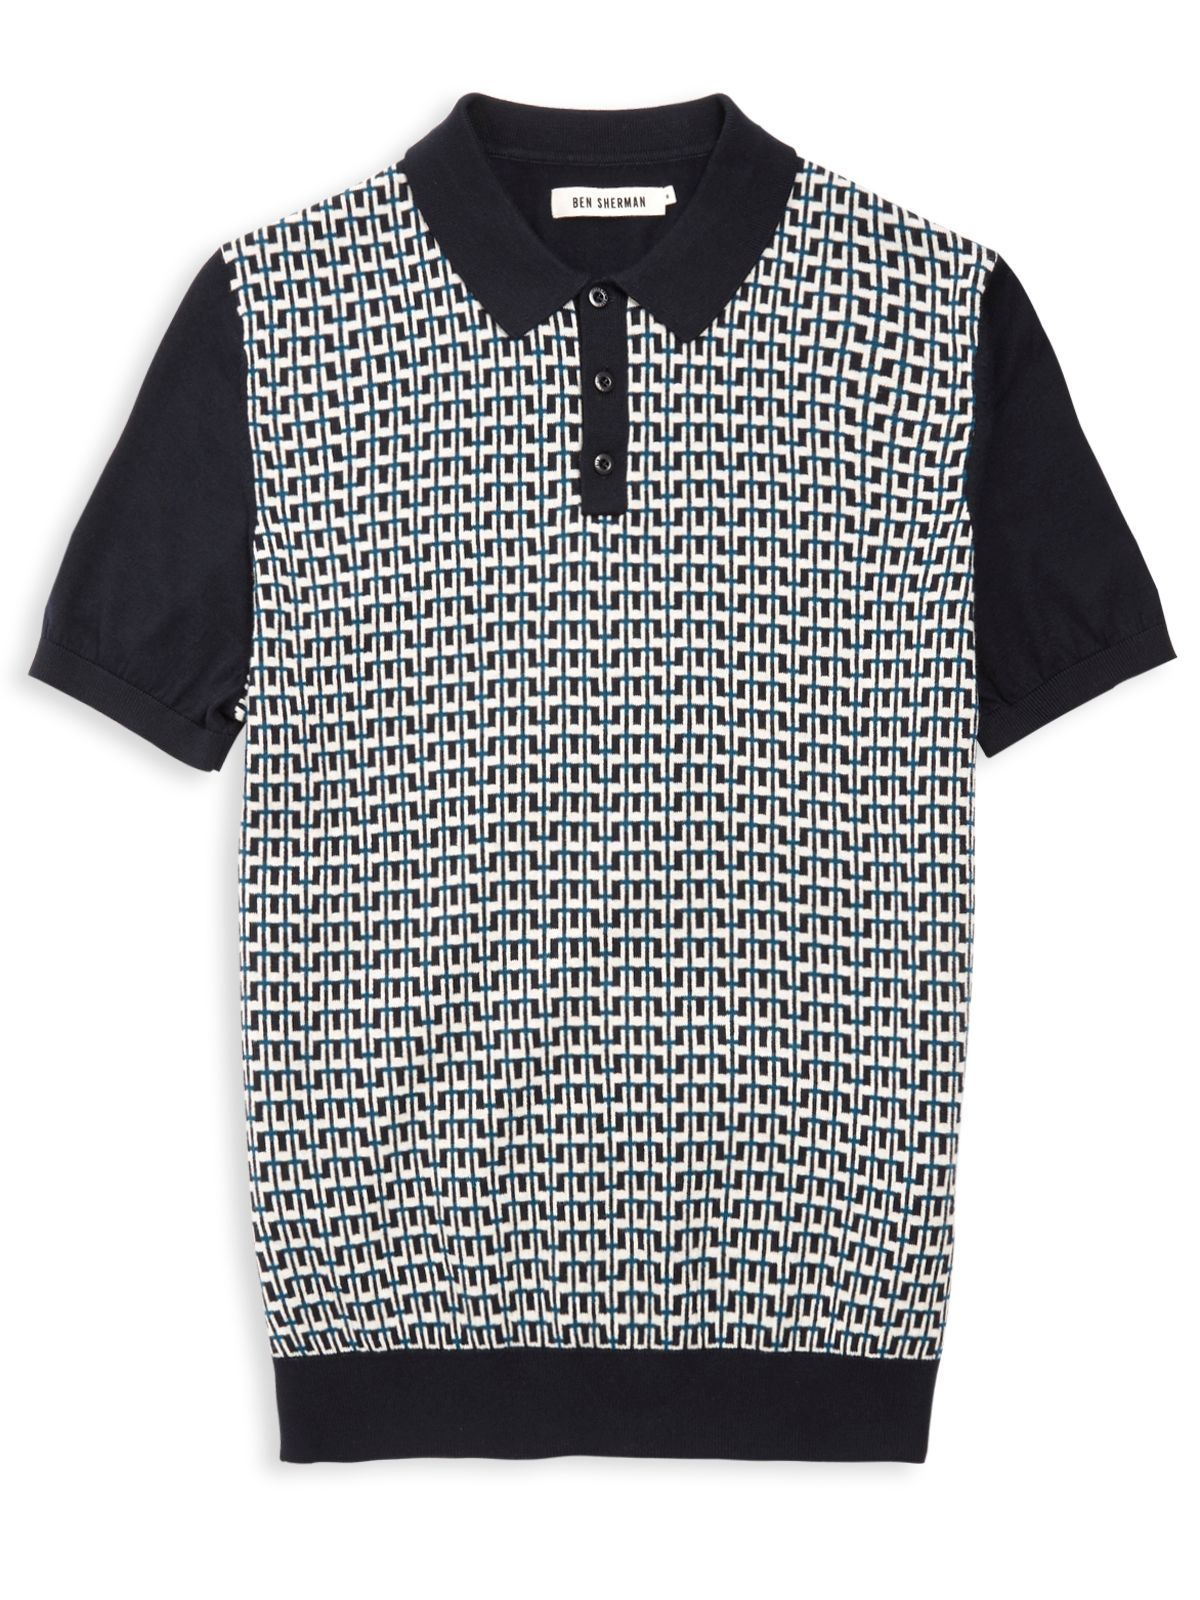 Ben sherman geo knit polo shirt in blue for men lyst for Knitted polo shirt mens